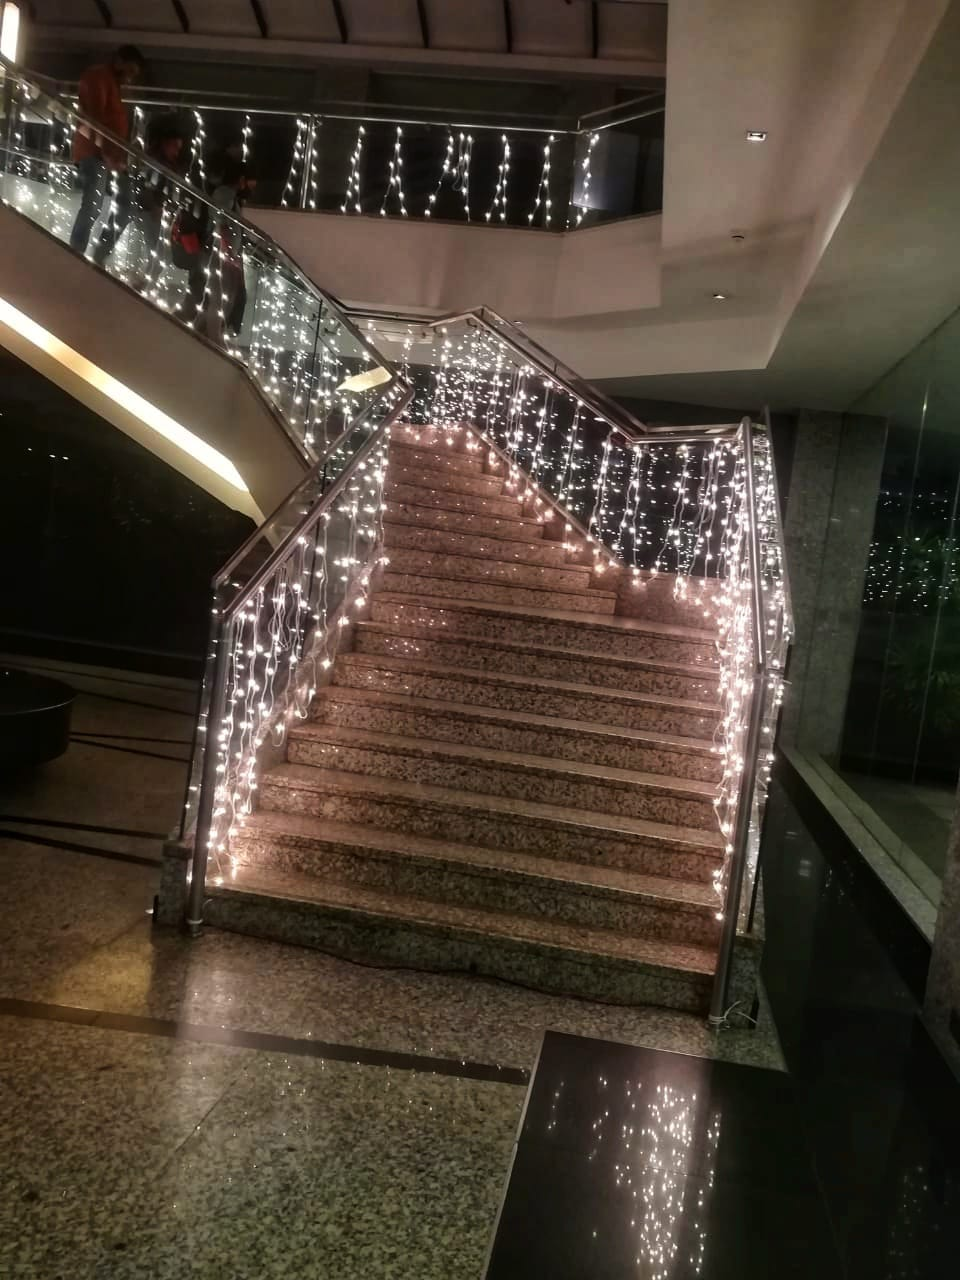 hand railing decoration using small lights